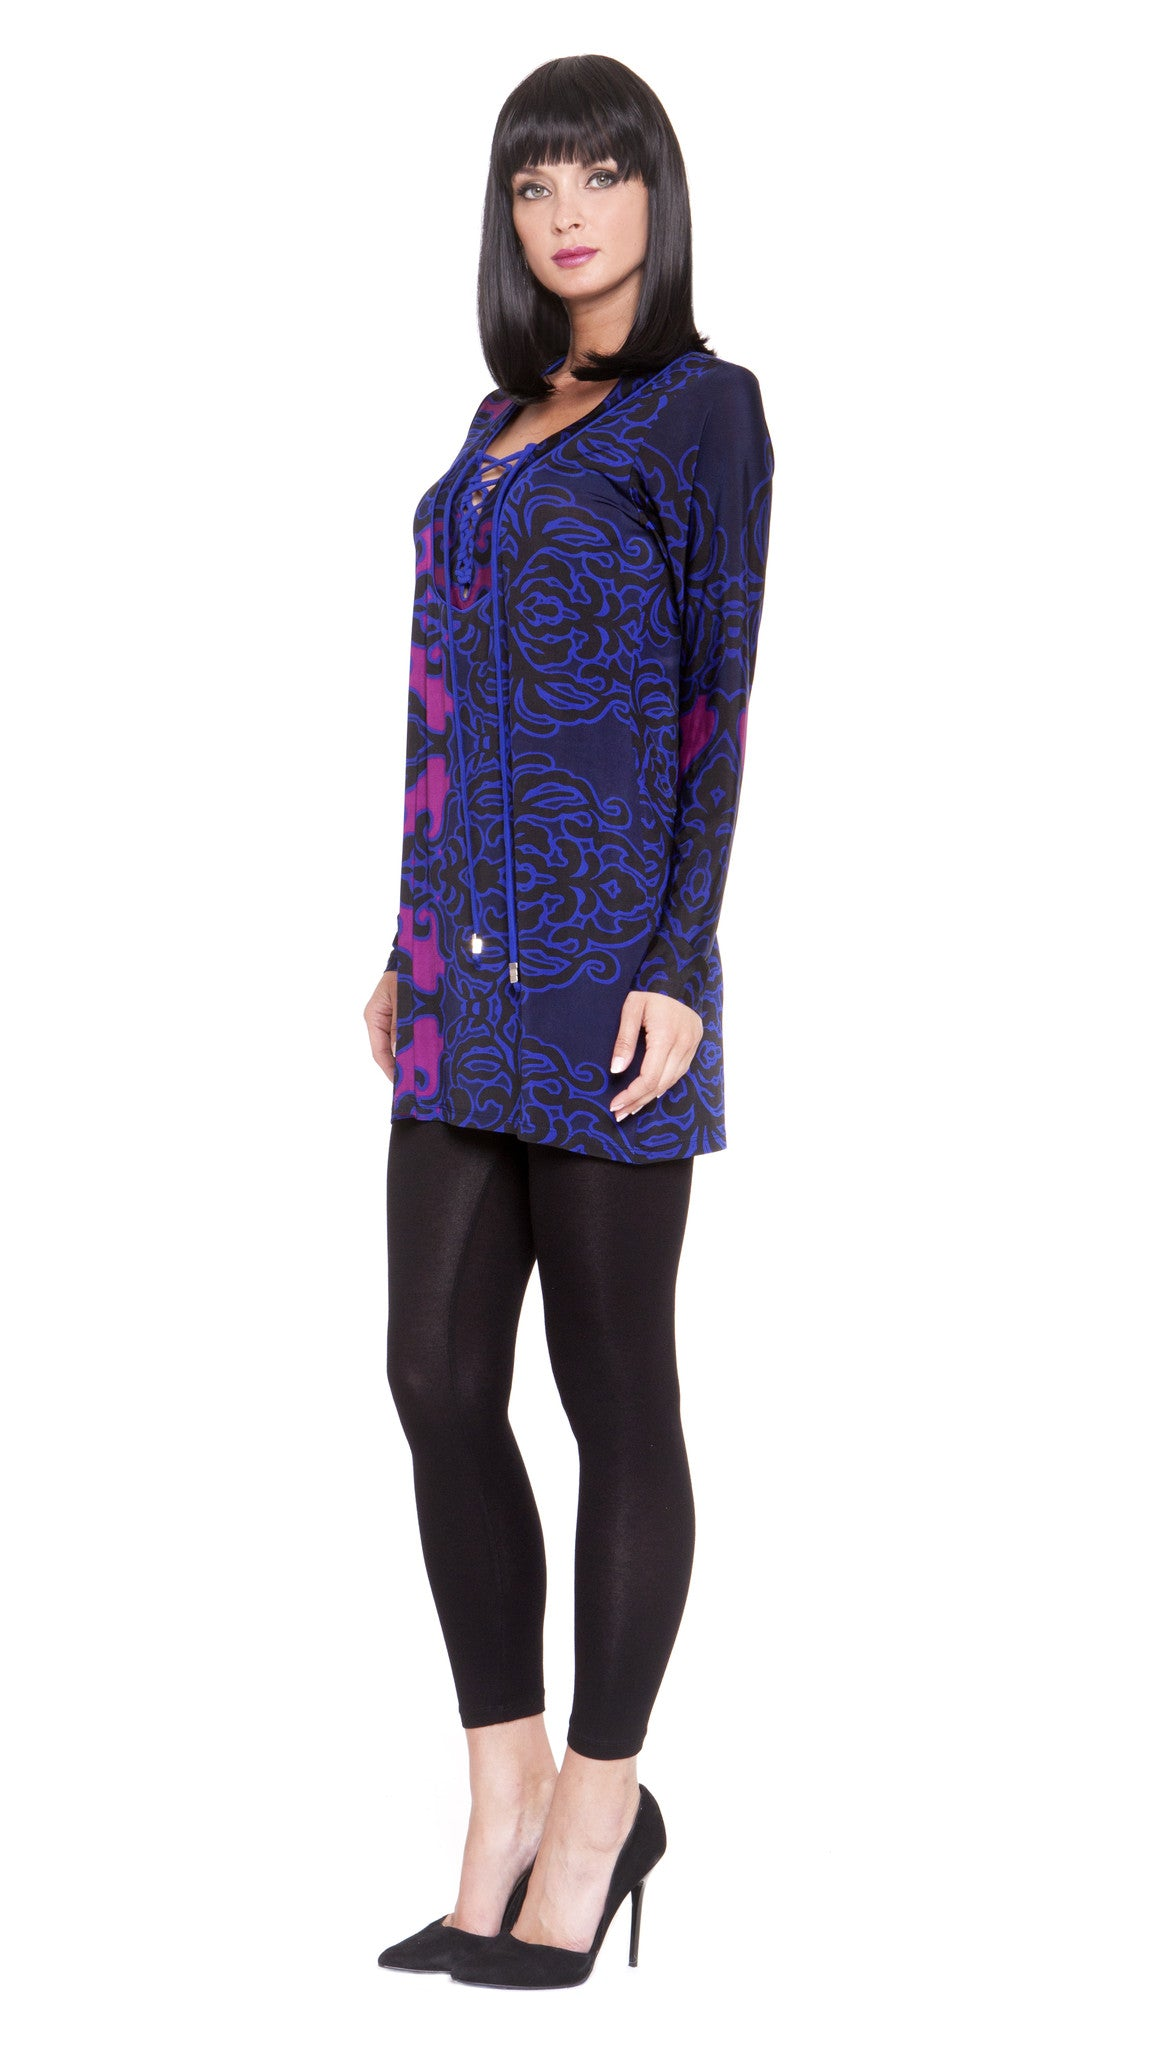 Z Cara Drawstring Tunic Dress